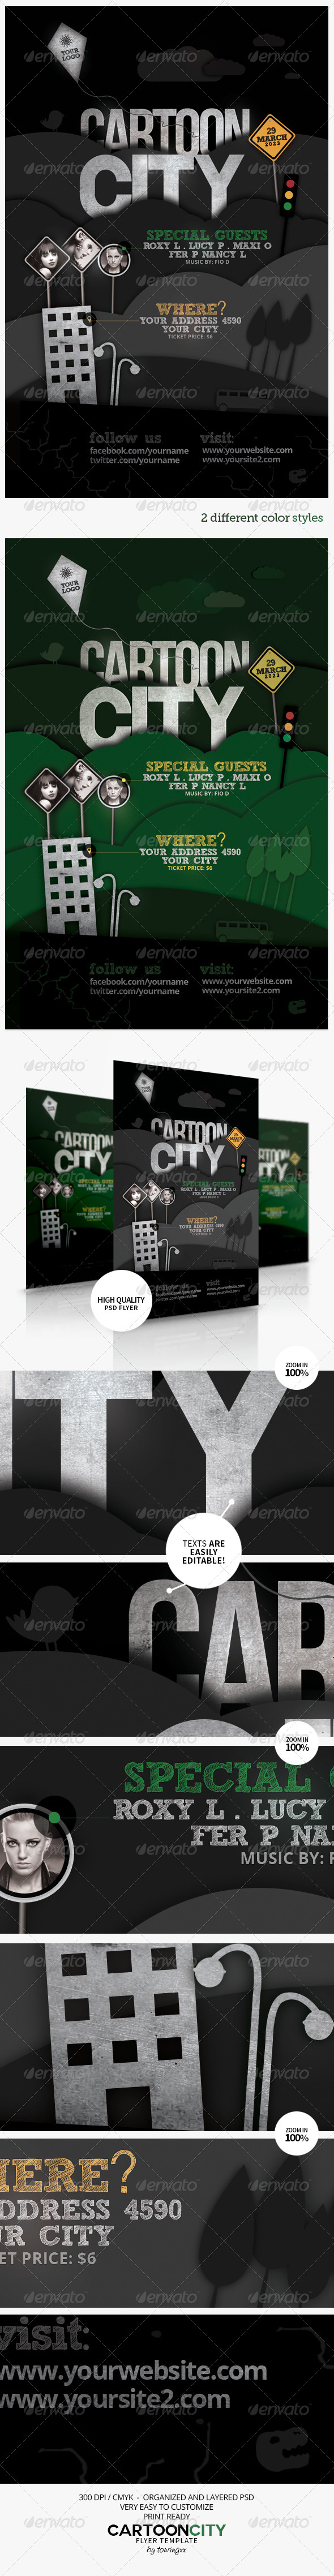 Cartoon City Flyer Template - Events Flyers